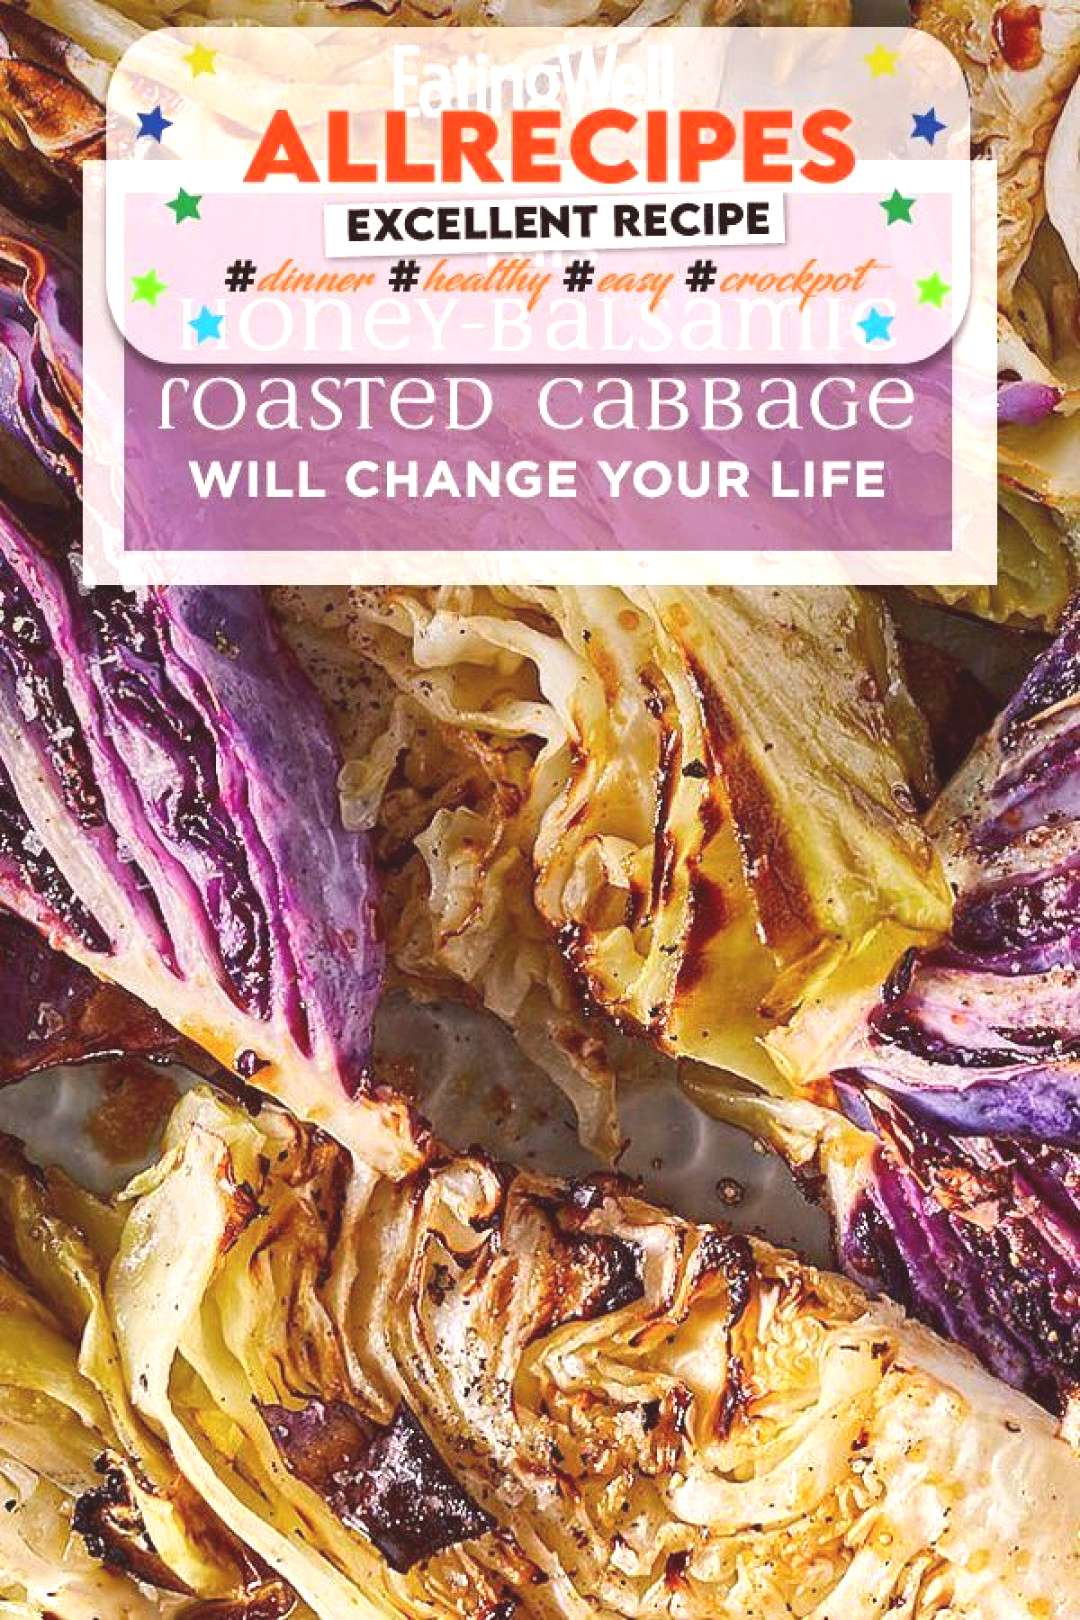 Balsamic Roasted Cabbage - - These roasted cabbage wedges with honey and balsamic vinegar make an a